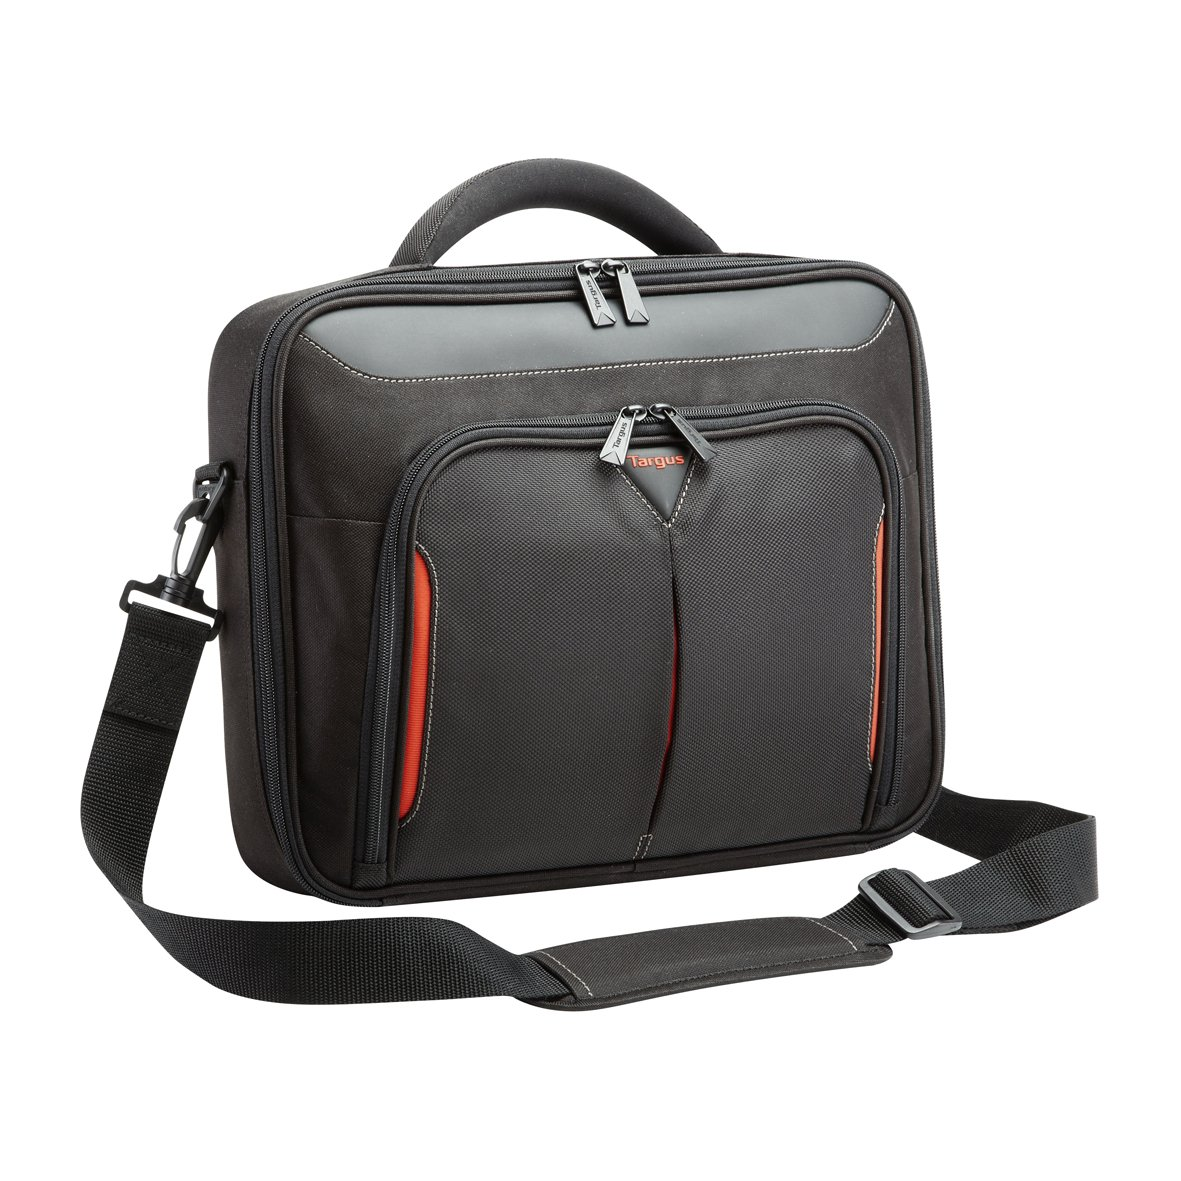 "Targus Classic 10-12.1"" Clamshell Case - Black/Red"